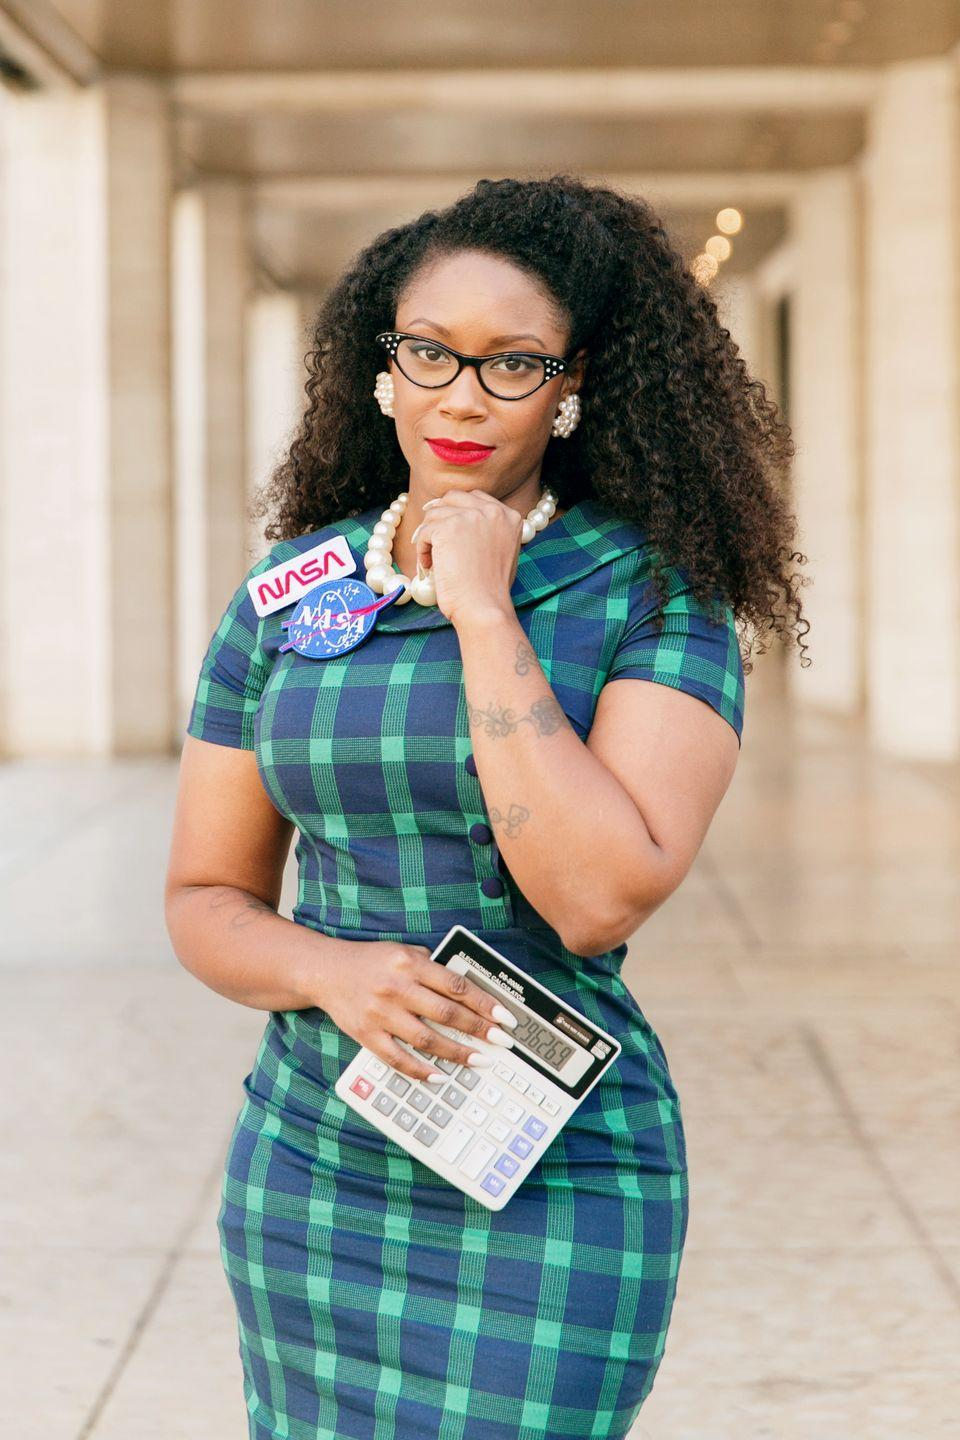 """<p>Have you seen <em>Hidden Figures</em>? Us too—it's a favorite, and it highlights what strong, powerful women are capable of. That's why we're loving this fun costume idea that emulates NASA mathematician Katherine Johnson. <br></p><p><a class=""""link rapid-noclick-resp"""" href=""""https://www.amazon.com/gp/product/B0722GZYT3?tag=syn-yahoo-20&ascsubtag=%5Bartid%7C10050.g.4571%5Bsrc%7Cyahoo-us"""" rel=""""nofollow noopener"""" target=""""_blank"""" data-ylk=""""slk:SHOP NASA PATCHES"""">SHOP NASA PATCHES</a> </p>"""